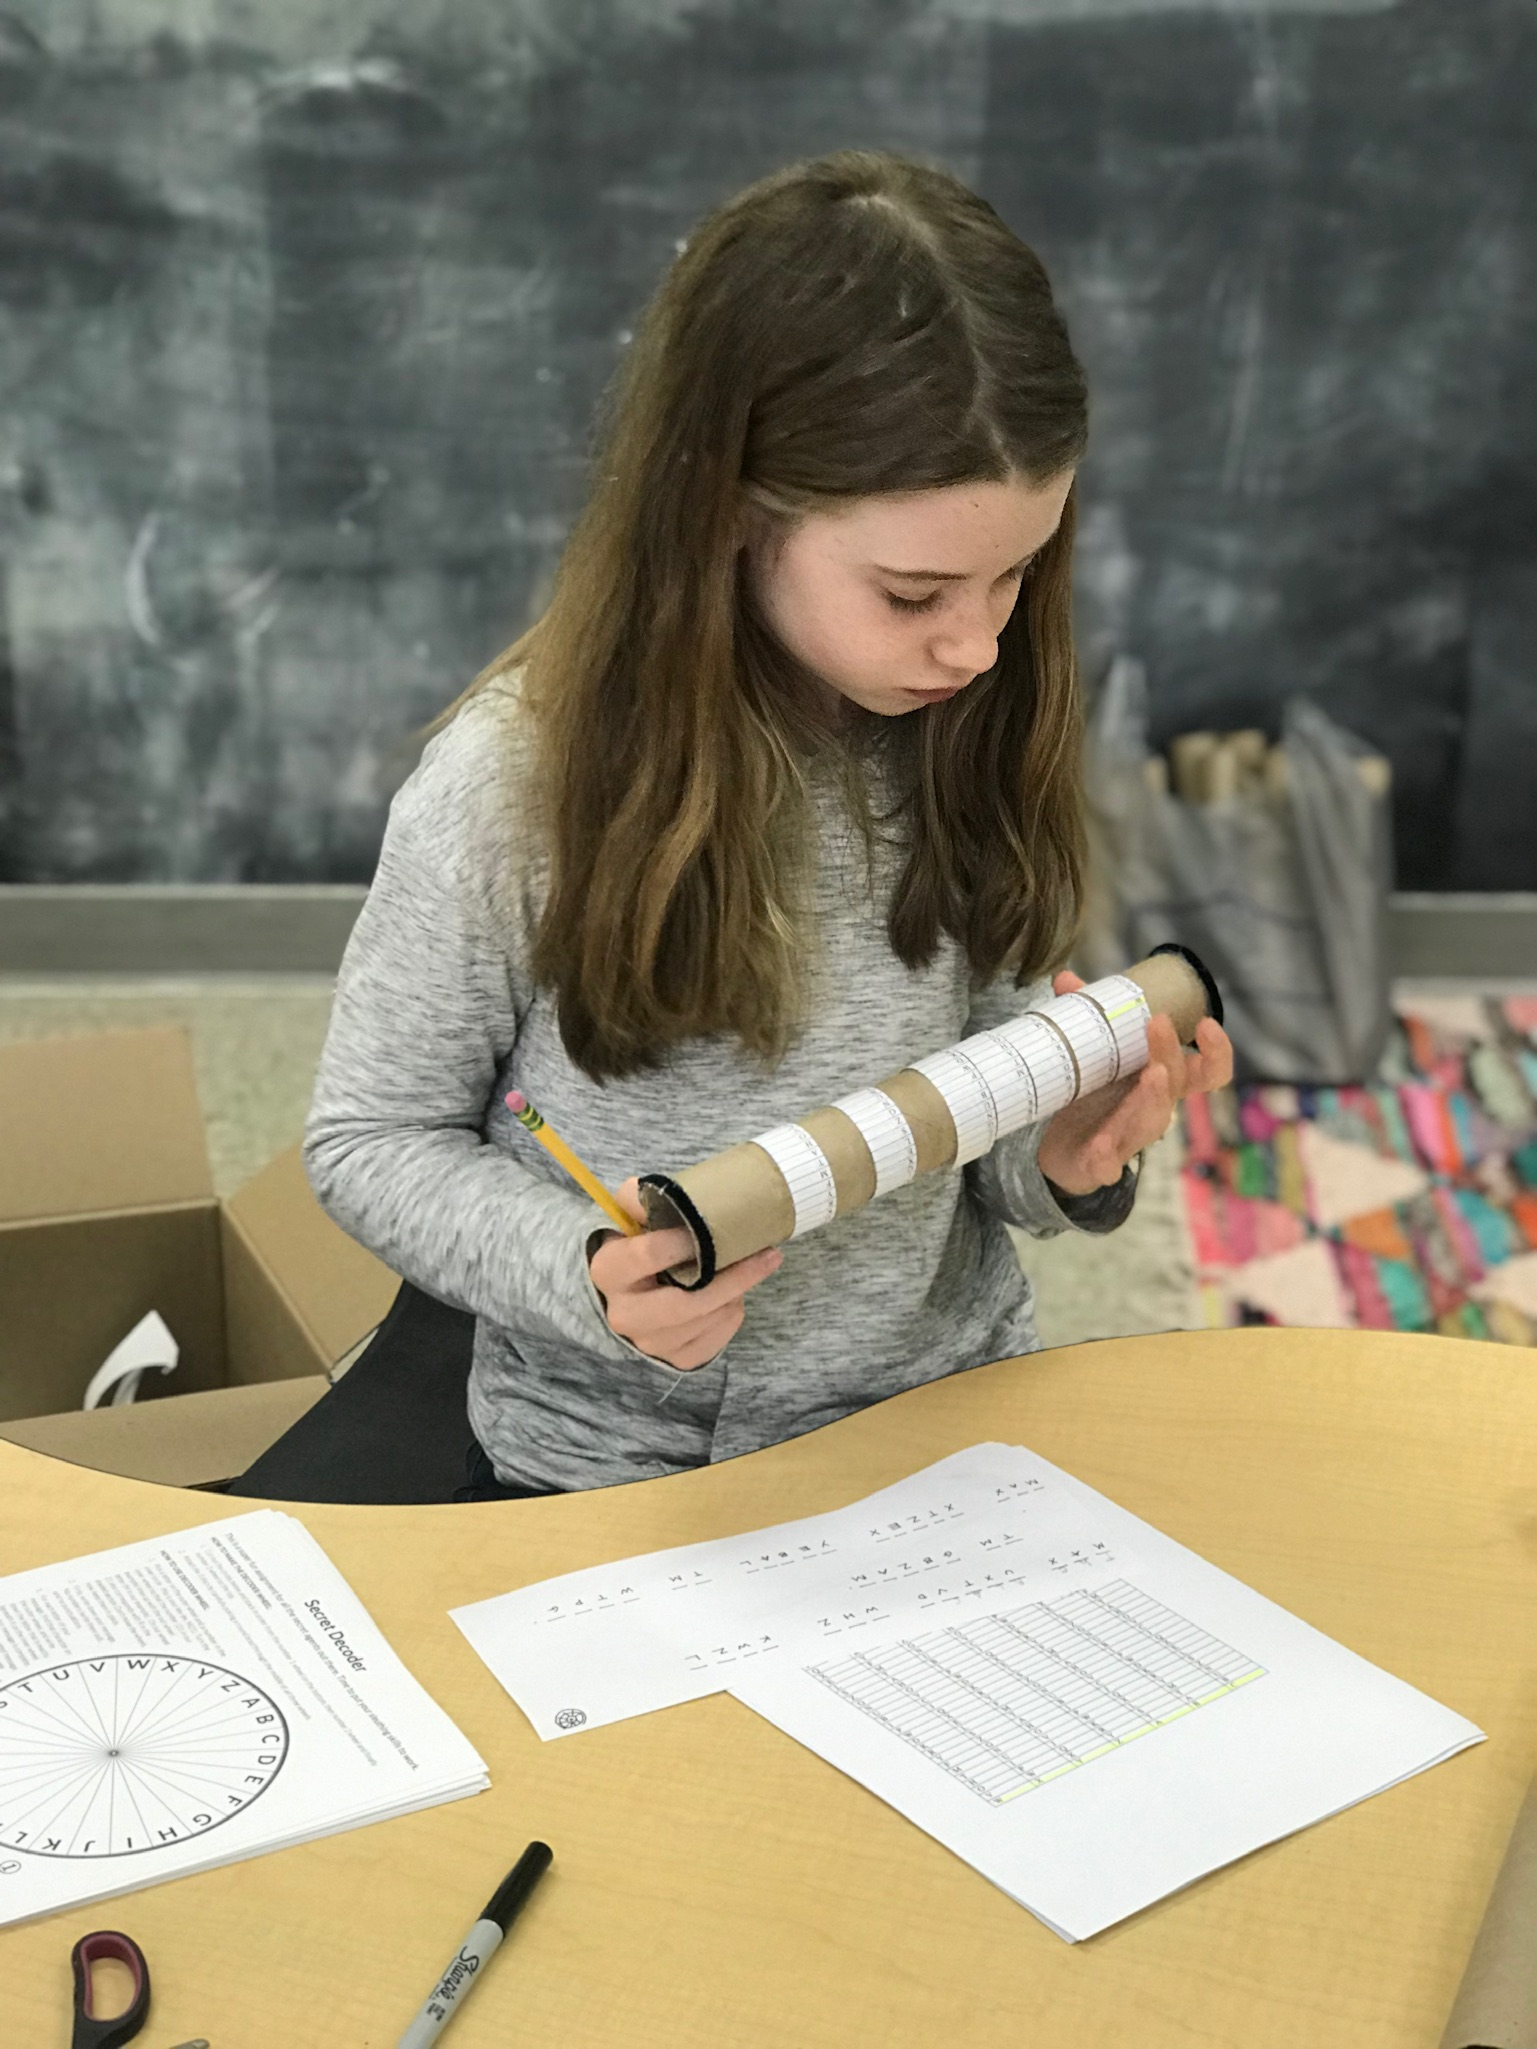 A more complicated cypher wheel, requiring numerous independently rotating paper wheels, provides a greater challenge for a 5th grader.